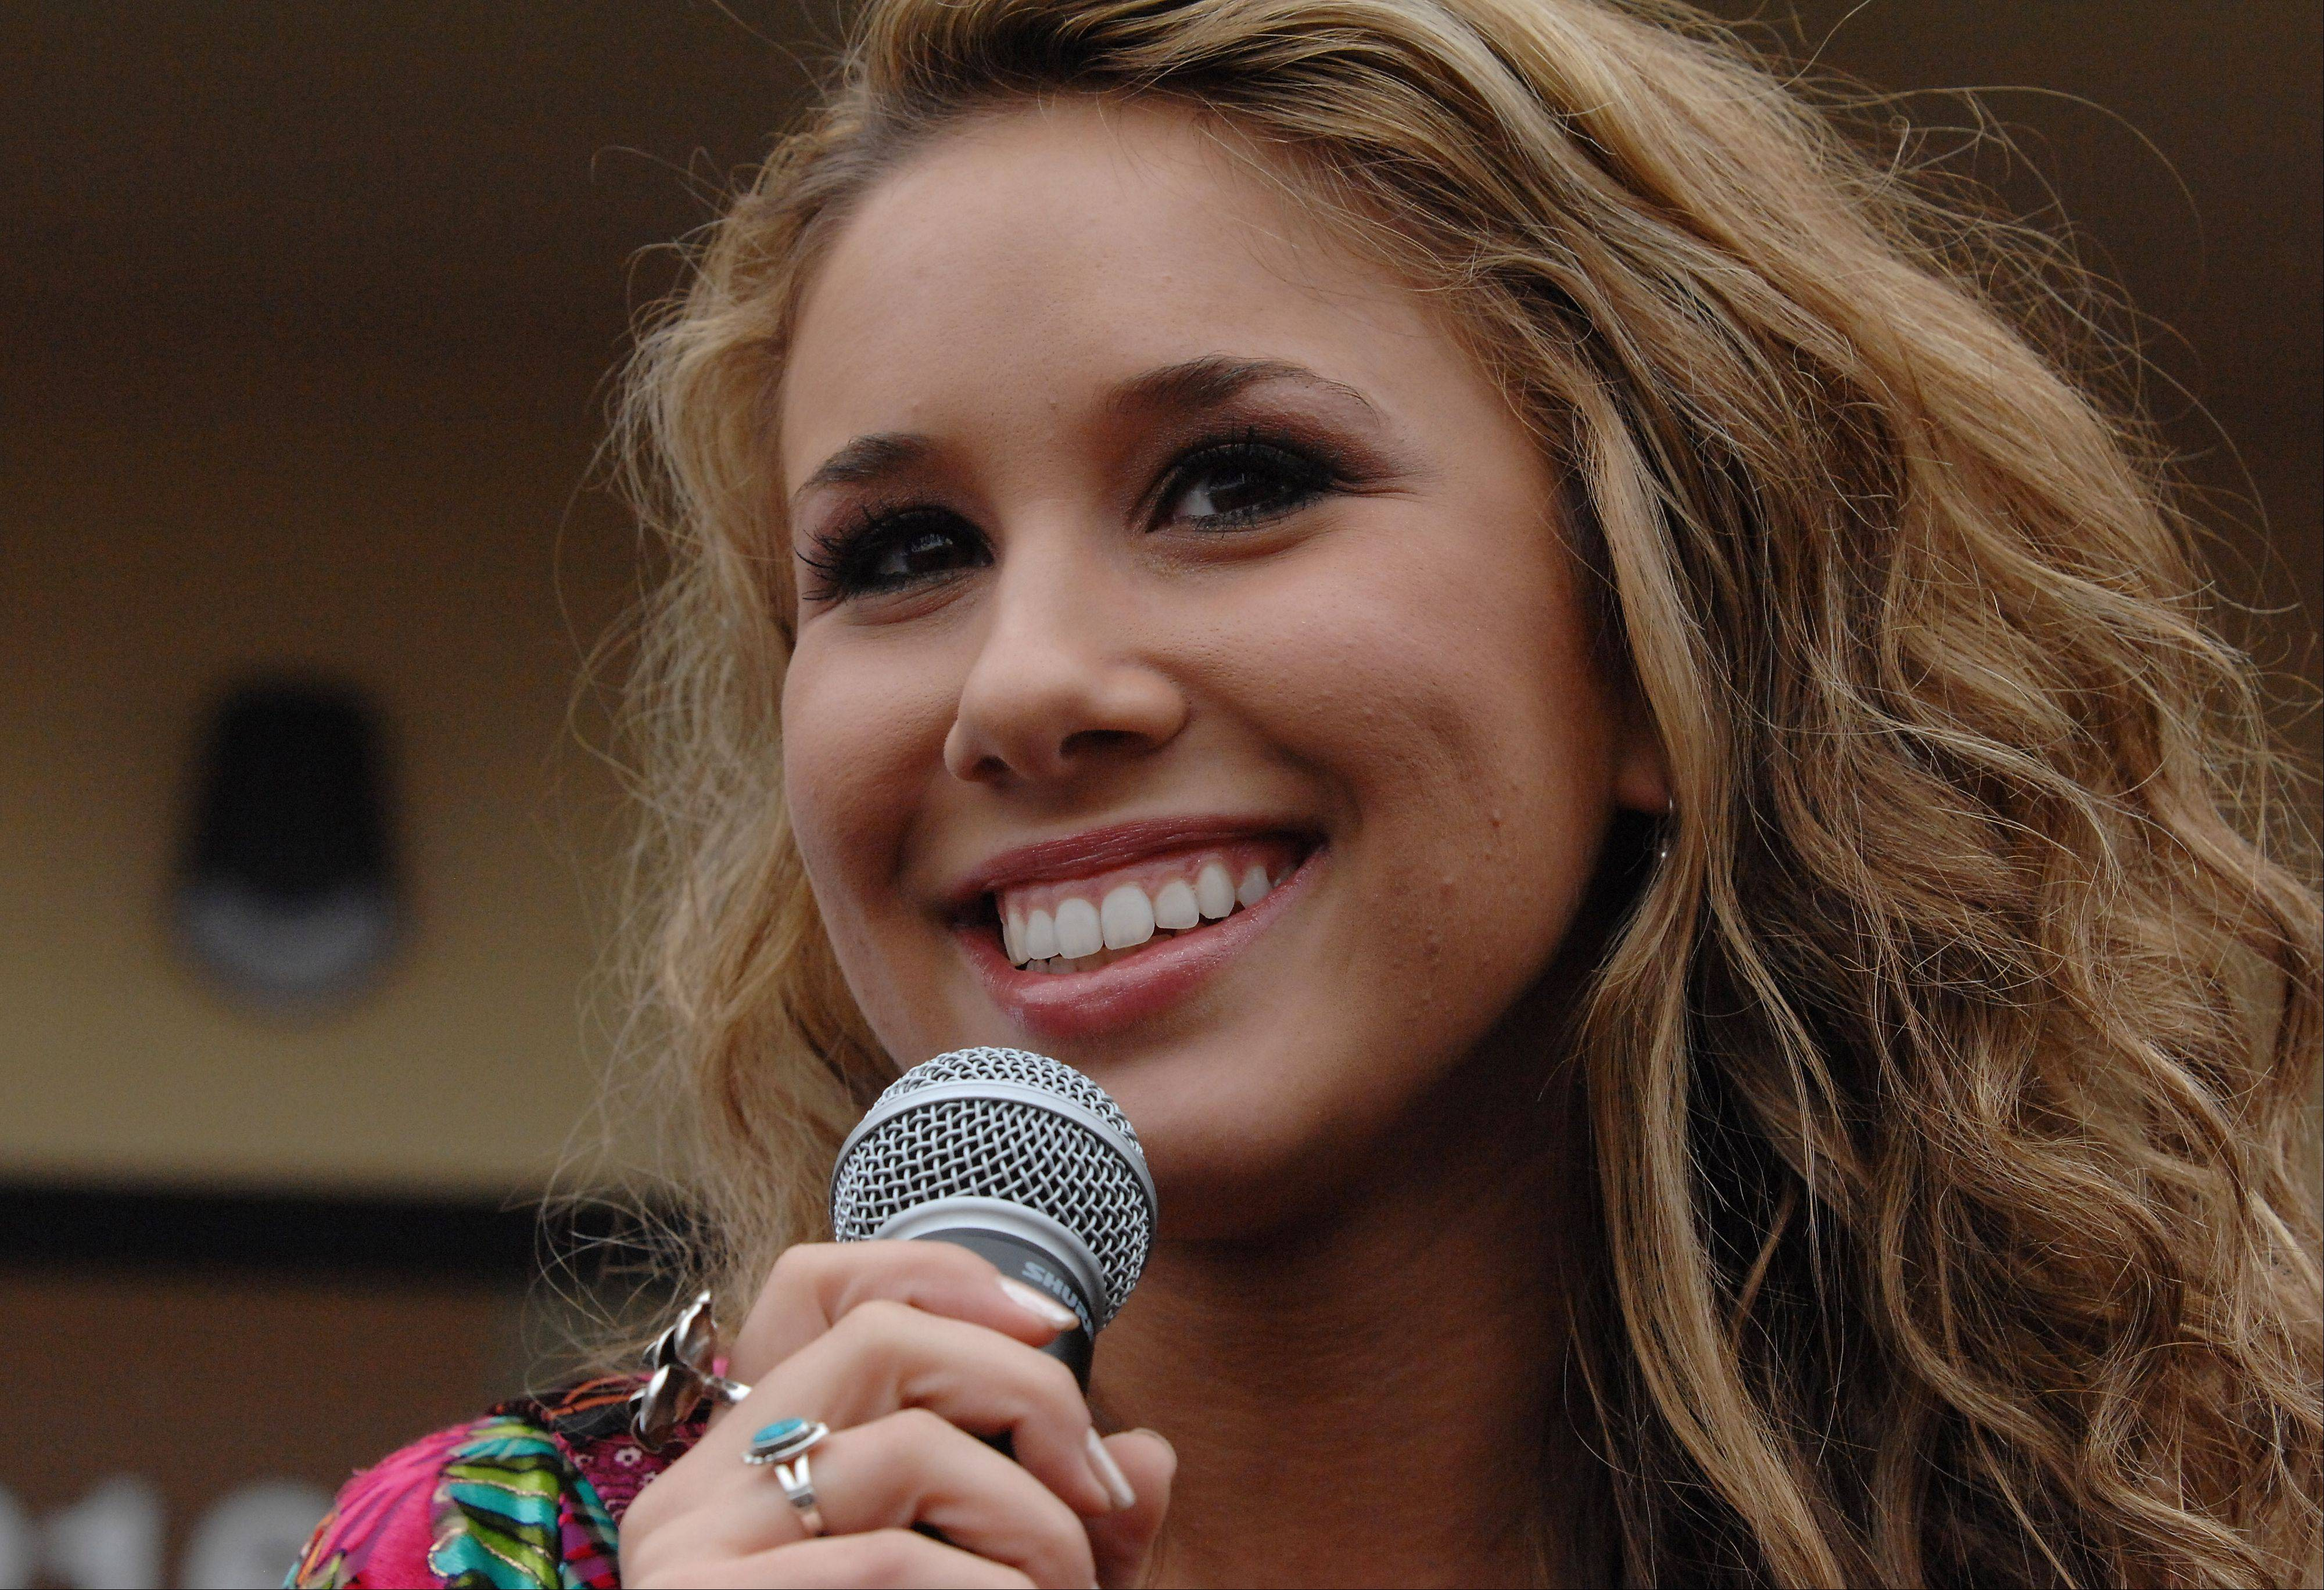 Wheeling native Haley Reinhart will return to the area to play the Lollapalooza music fest on Friday.